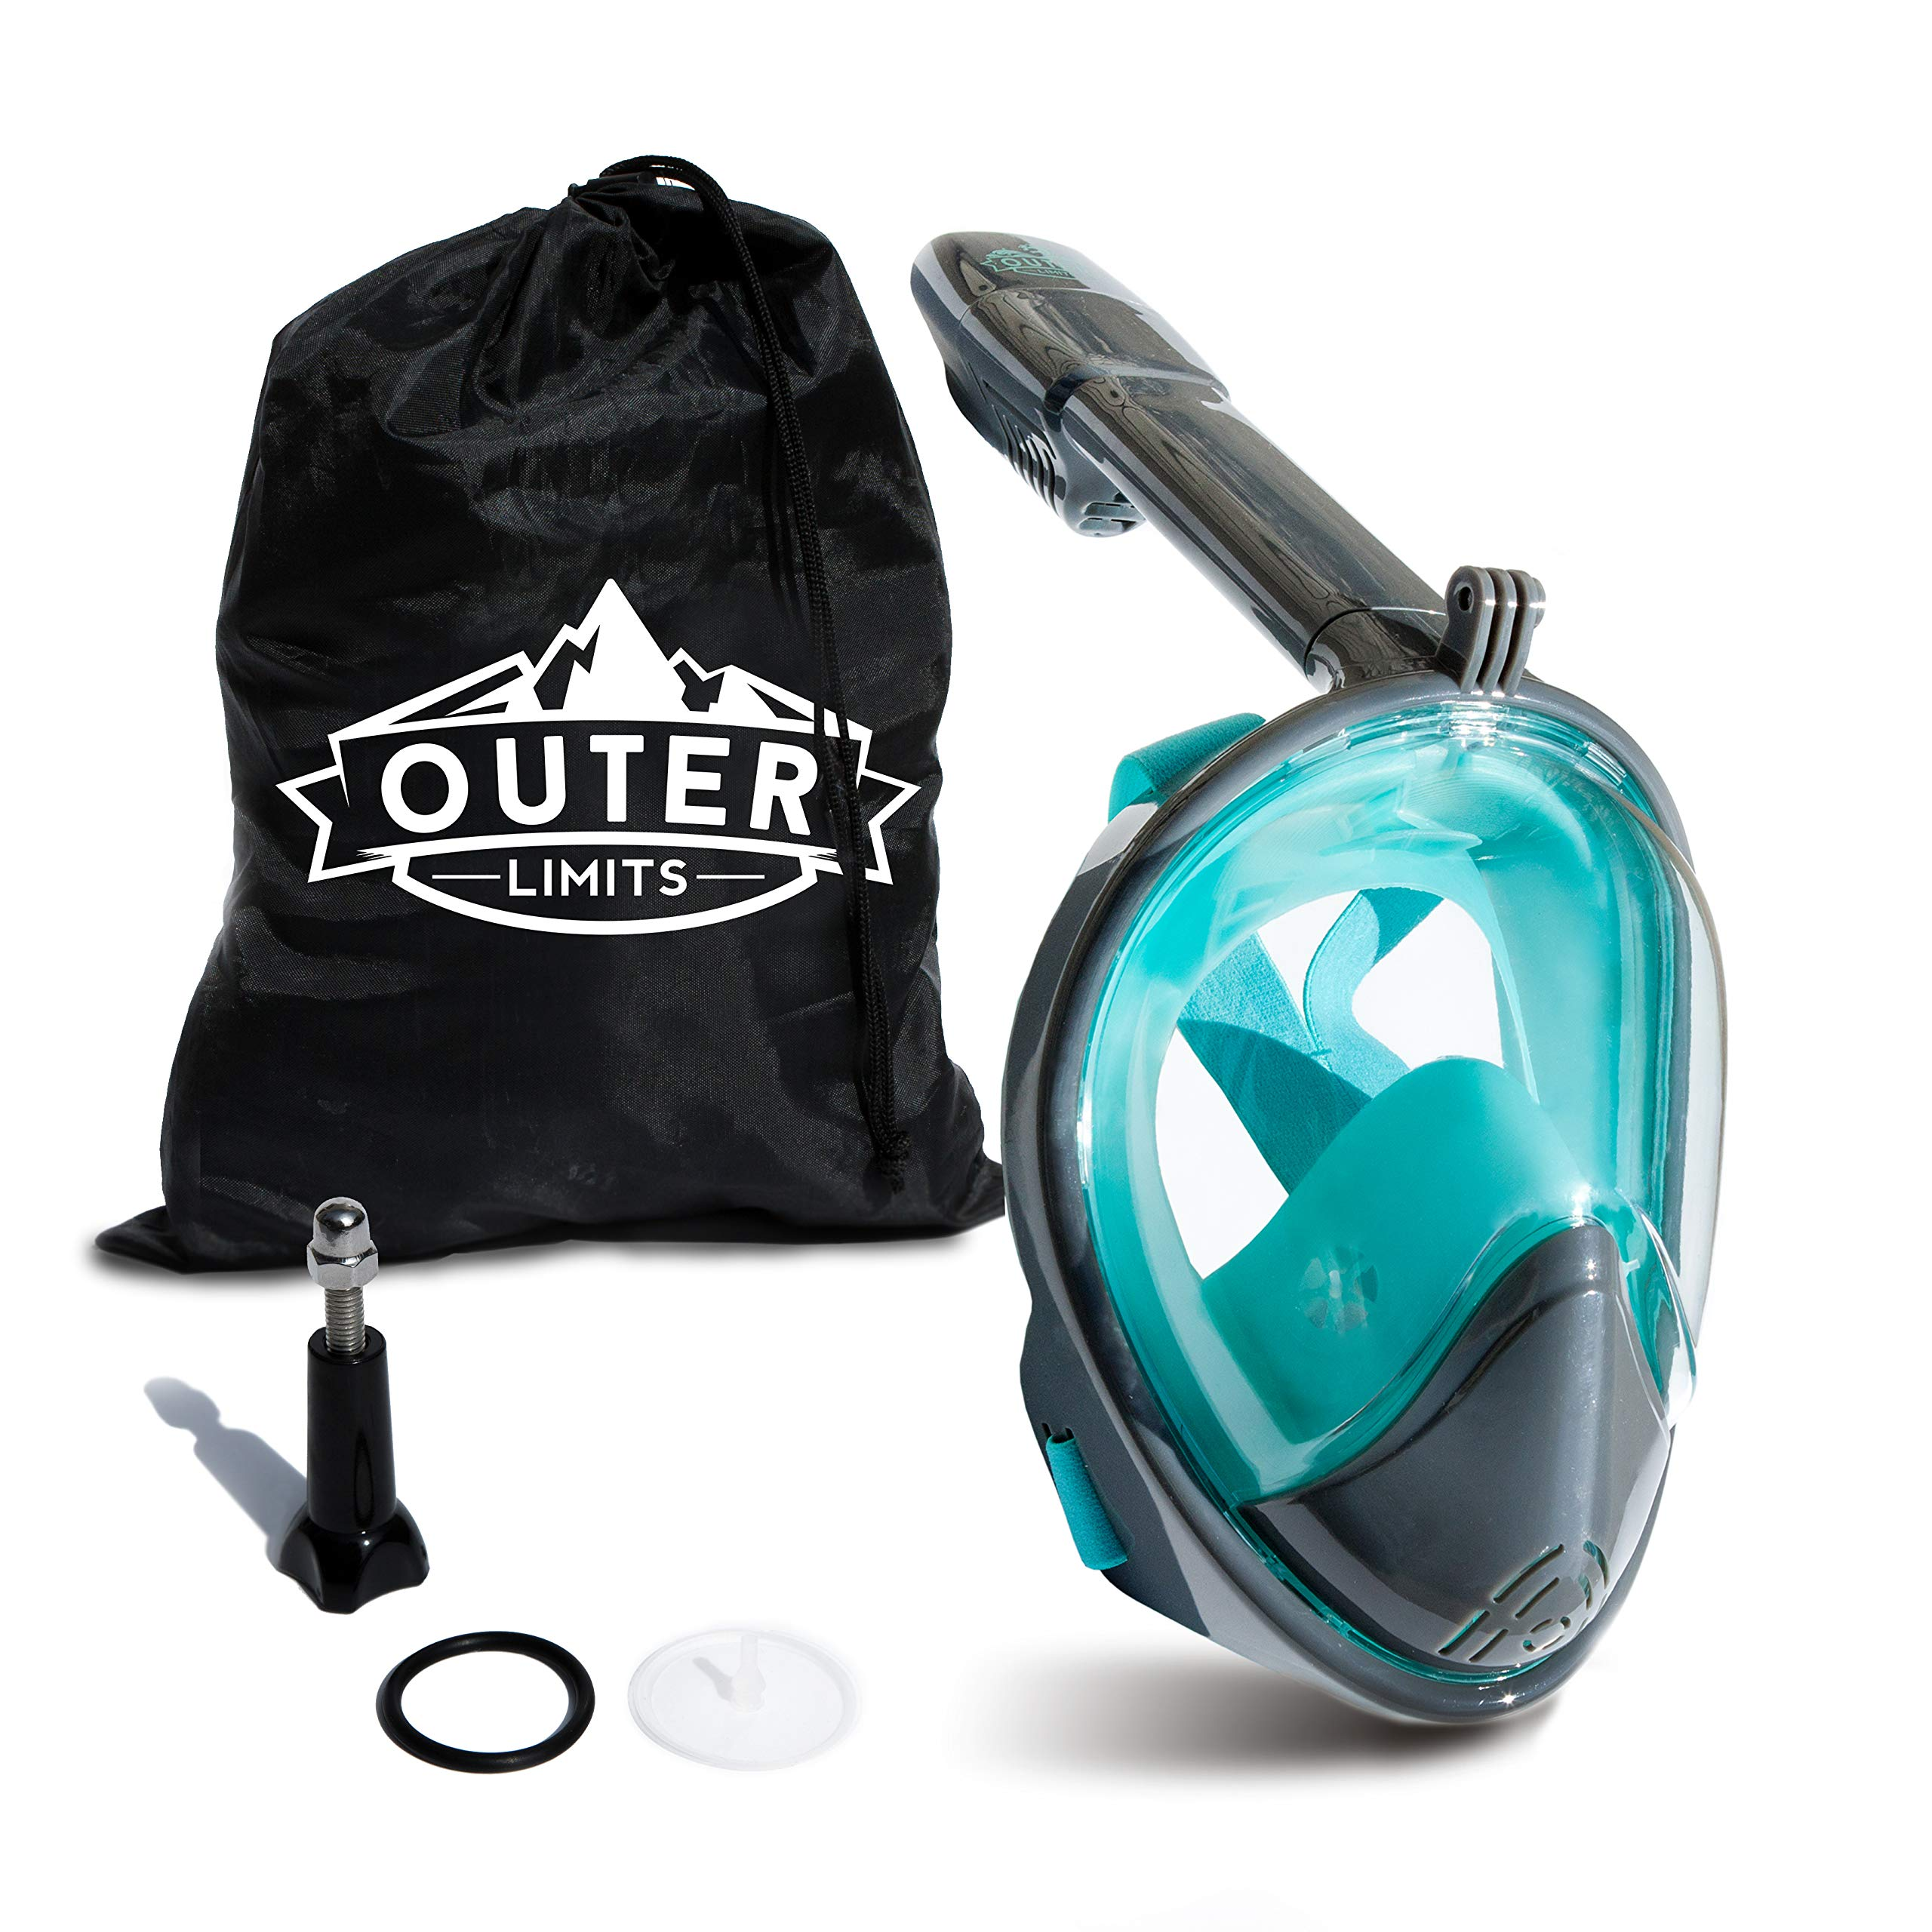 Outer Limits Full Face Snorkel Mask Adult - Works with GoPro - Scuba Mask - 180° Panoramic View - New 2019 Bubble Design with a Longer Snorkle - Snorkeling Gear - Adult Mask and Snorkel Sets by Outer Limits